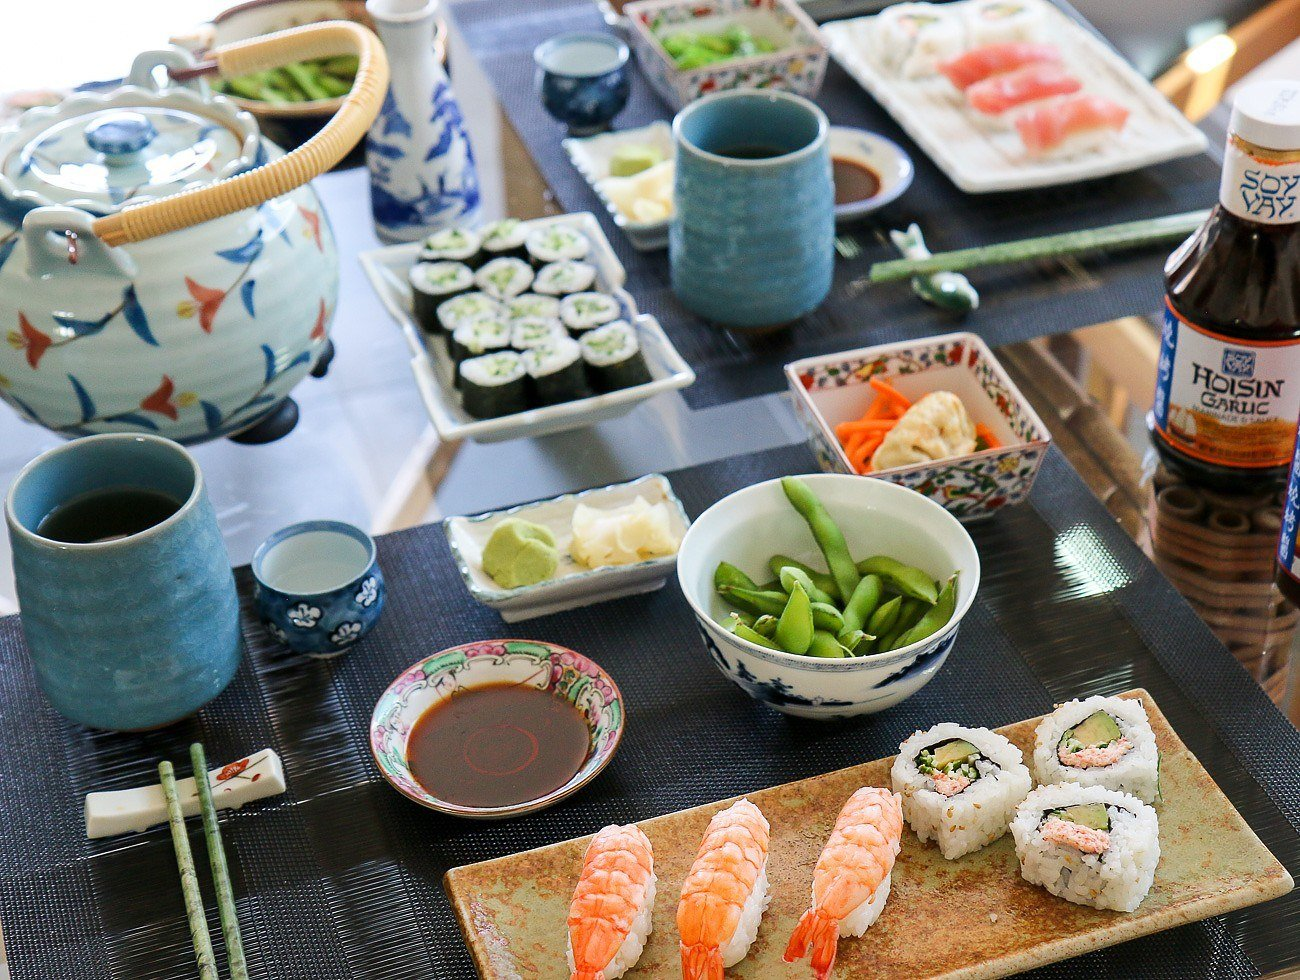 Roll your own or buy it. Either way, here are key components for an intimate sushi party with friends.